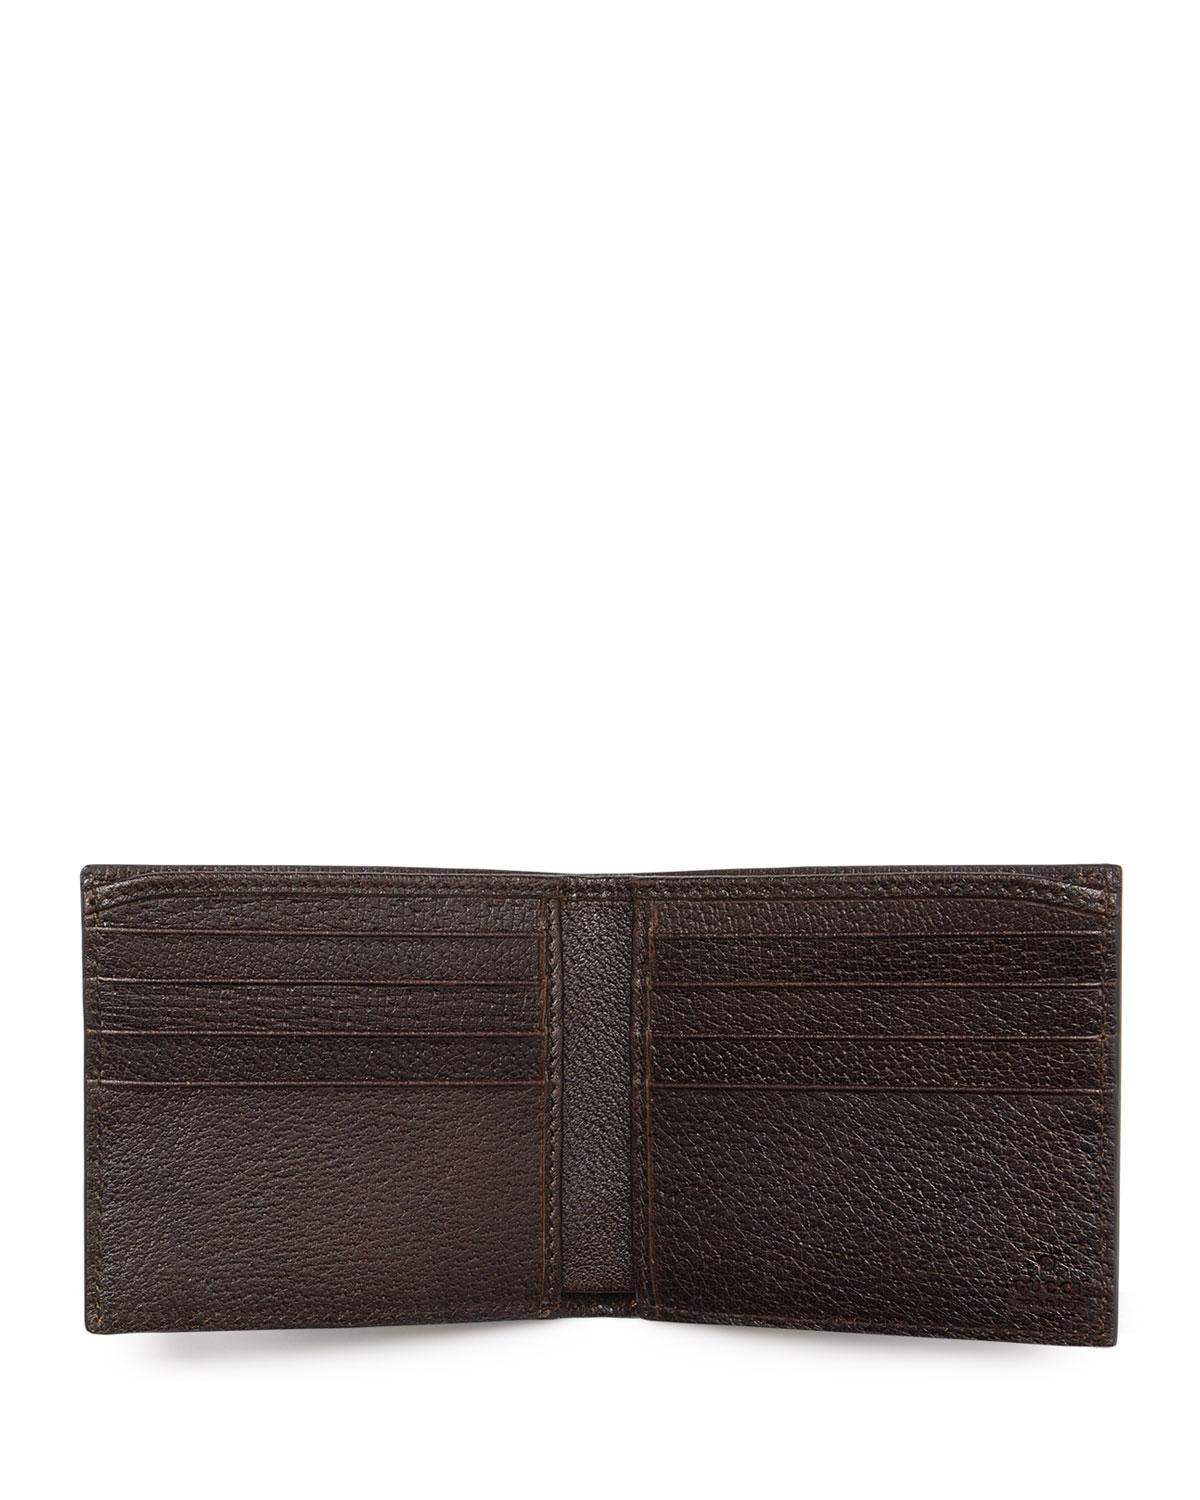 647a5591bda6 Gucci Leather Web Bifold Wallet | Stanford Center for Opportunity ...